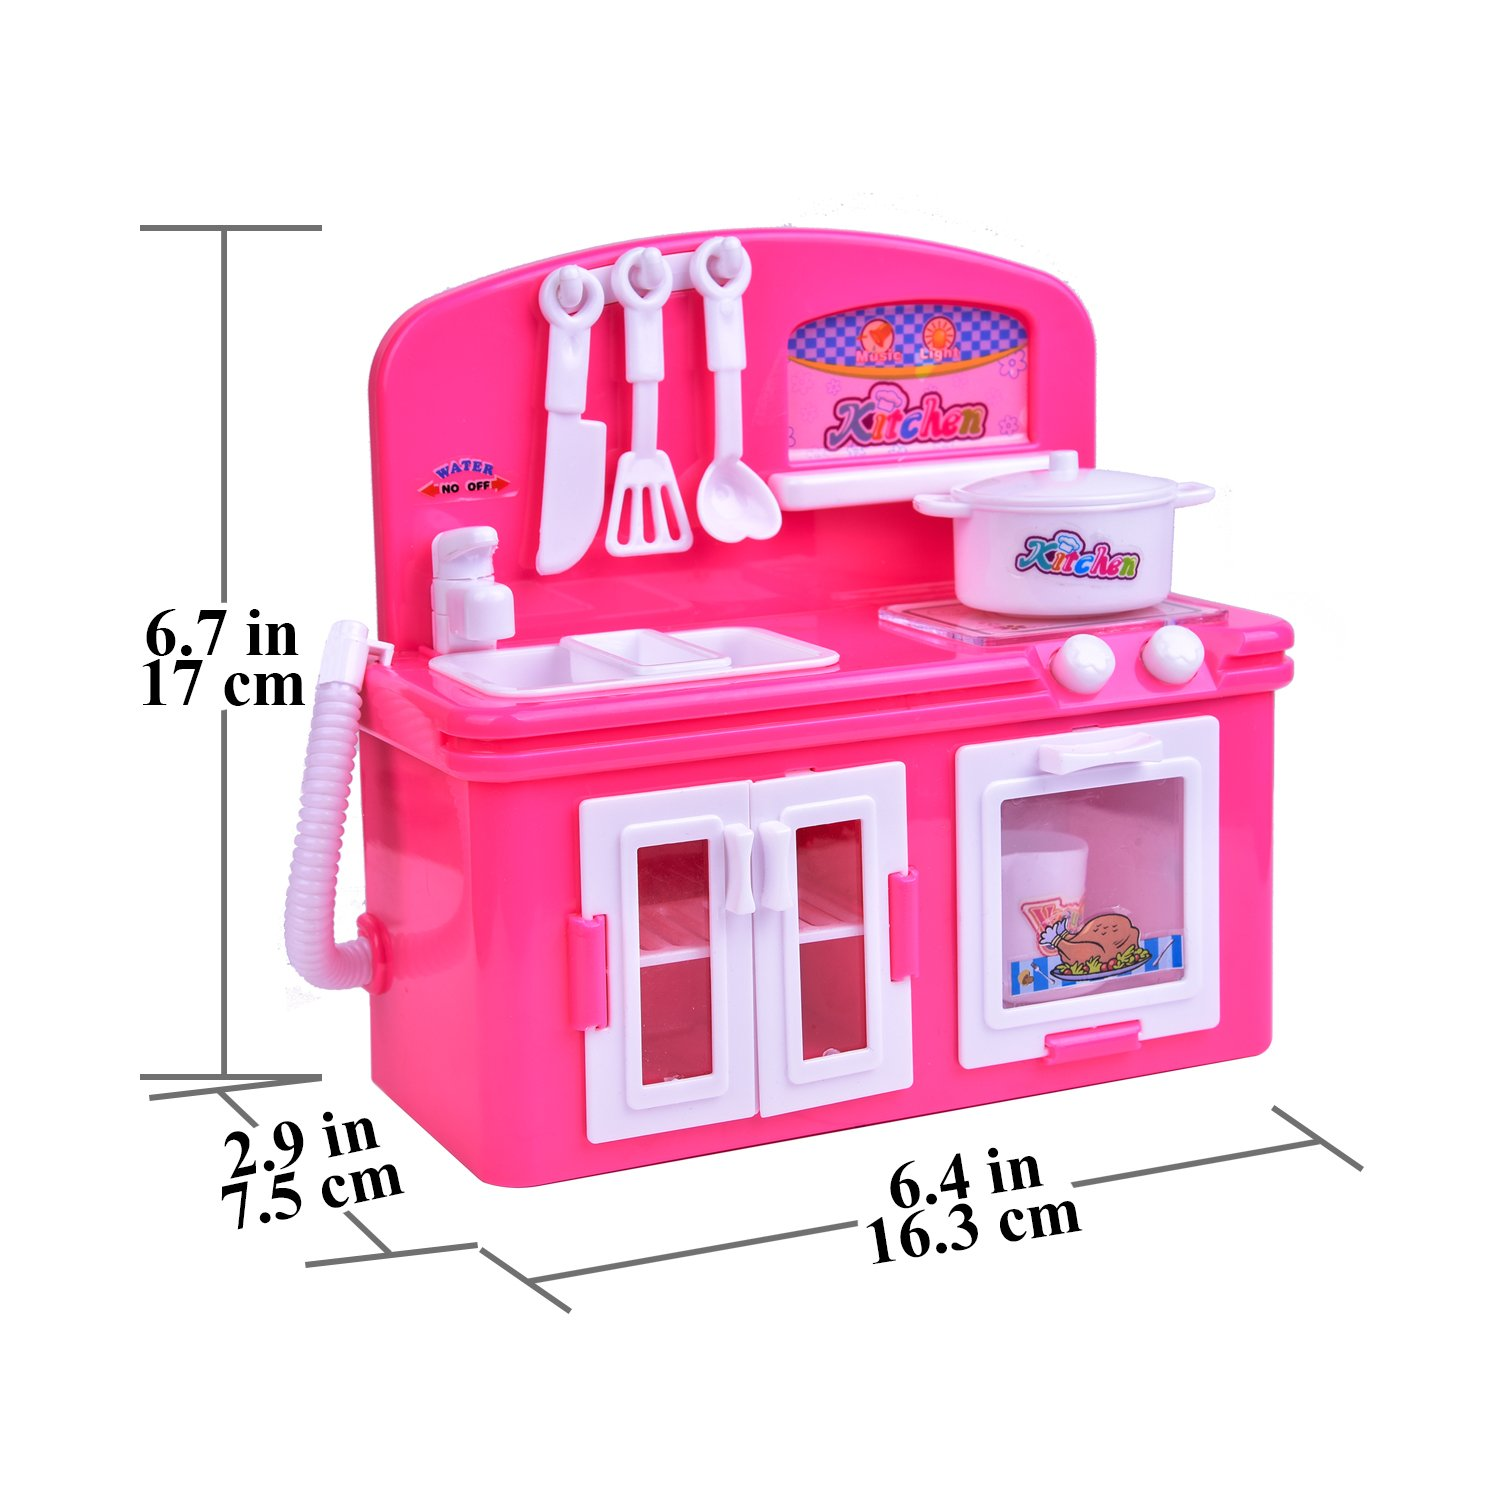 19 PCs Kitchen Appliance Toys with Kitchen, Refrigerator, Pot and Tableware, Pretend Play Set for Kids, Play Kitchen Appliance by FUN LITTLE TOYS (Image #7)